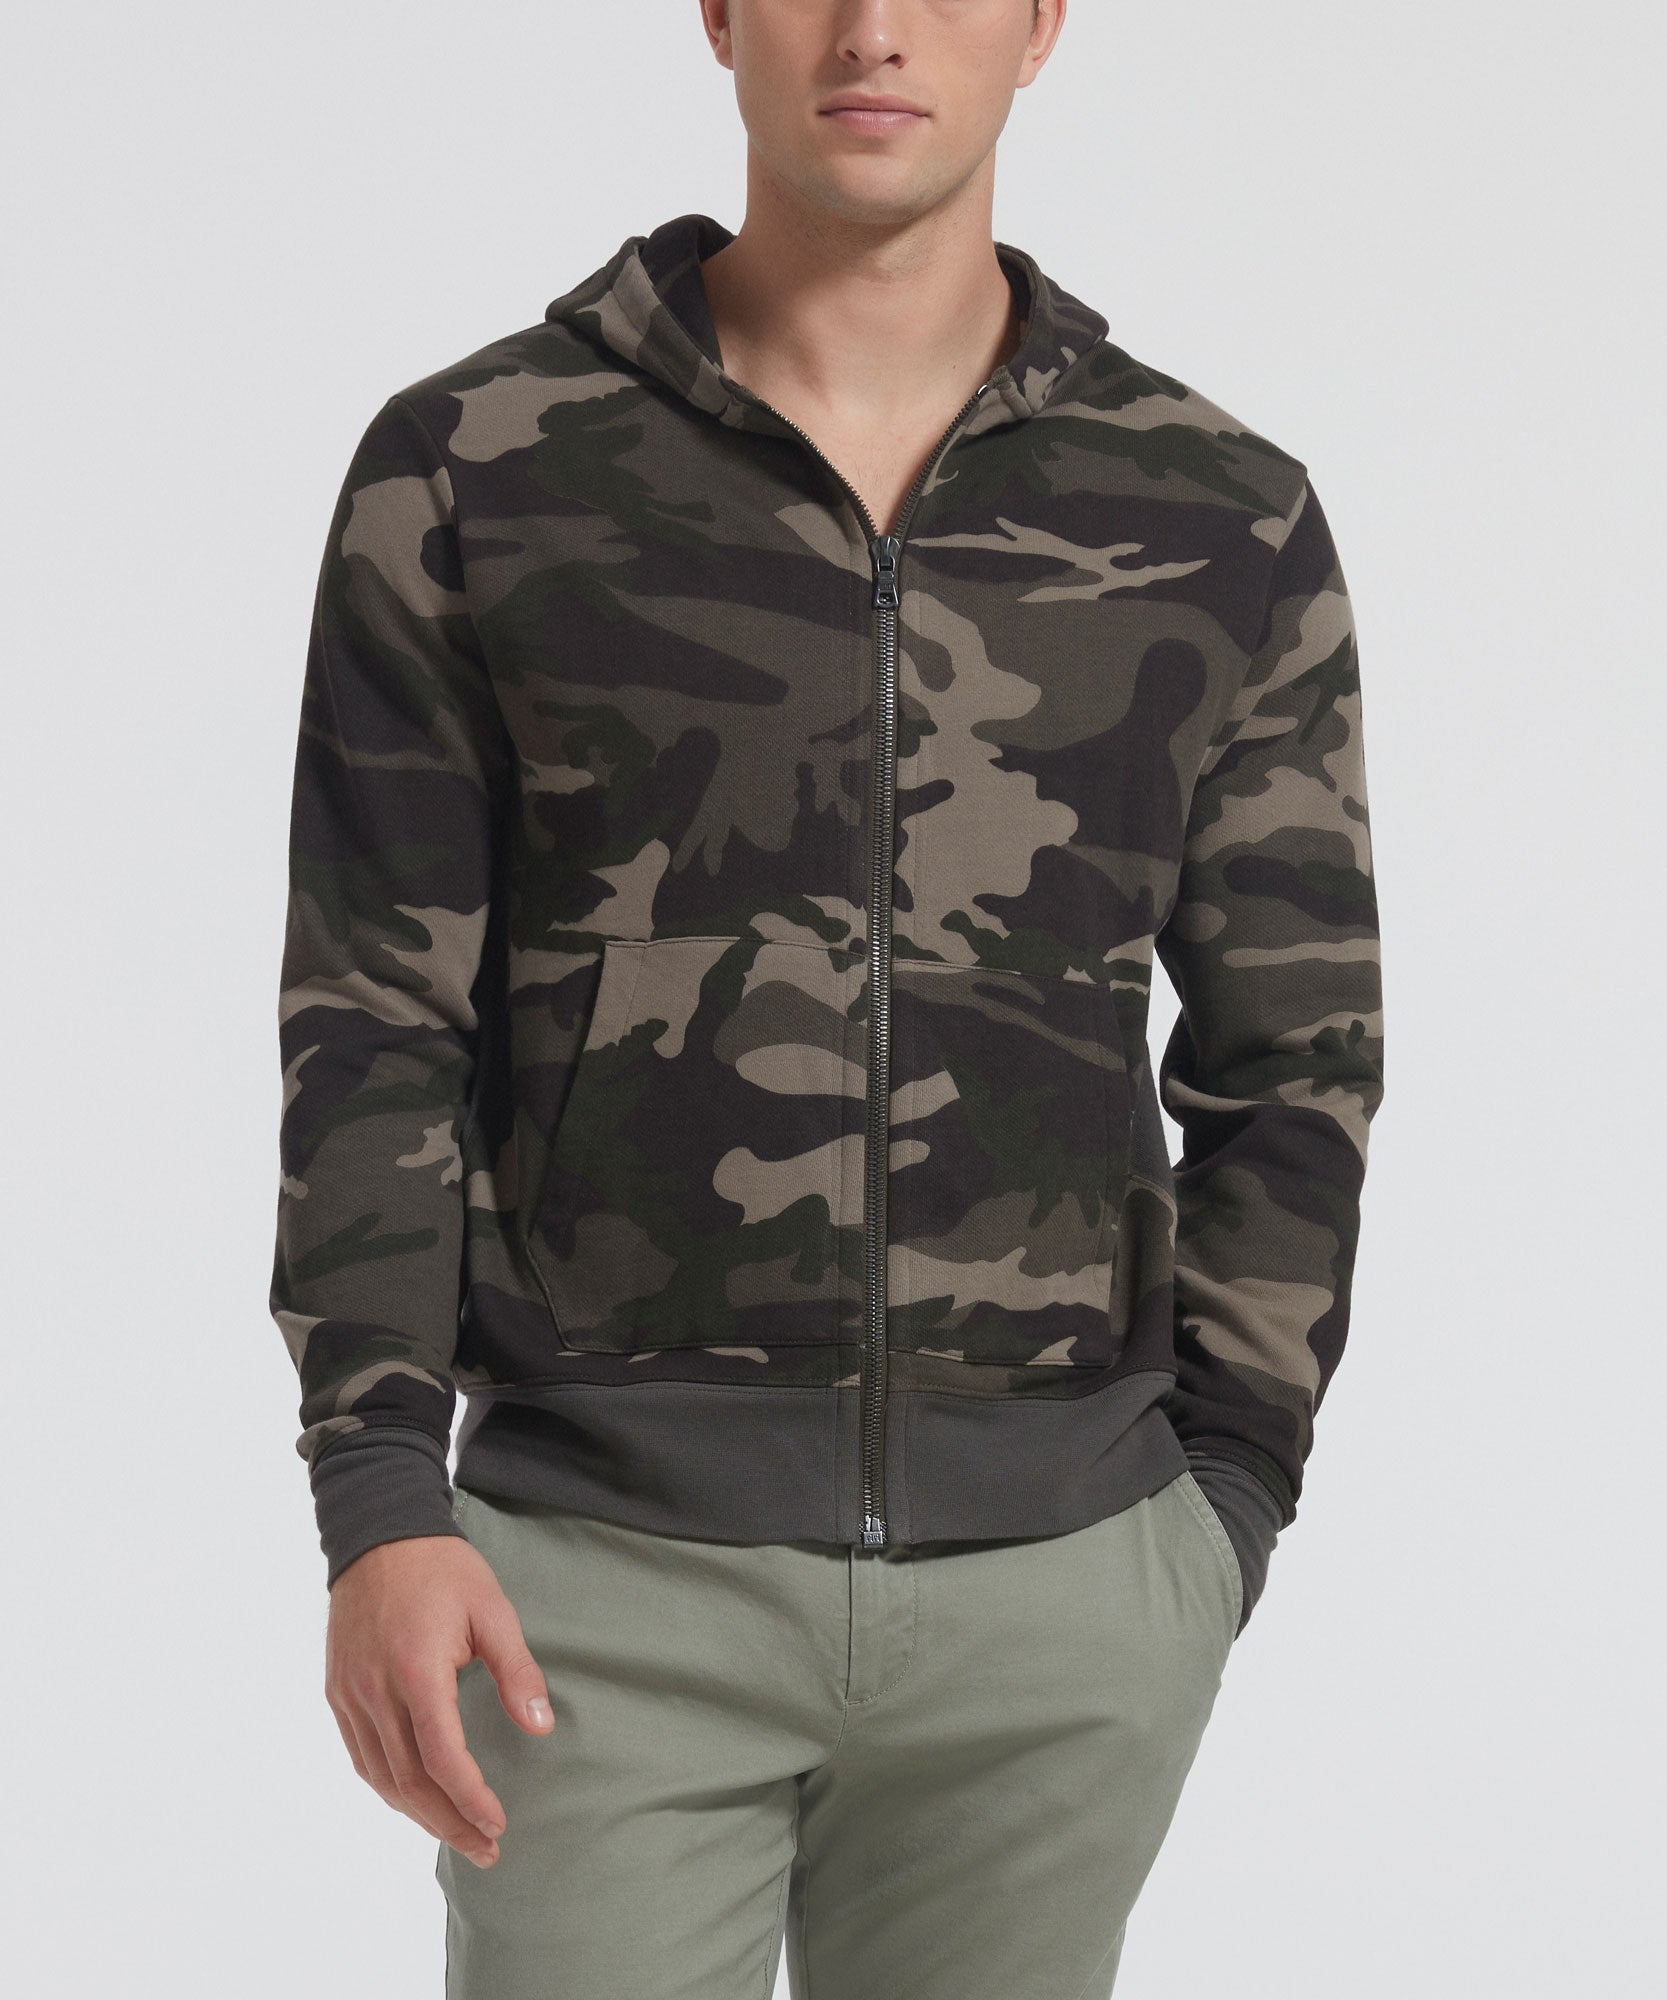 Jungle Camo French Terry Hoodie - Men's Luxe Cotton Loungewear by ATM Anthony Thomas Melillo